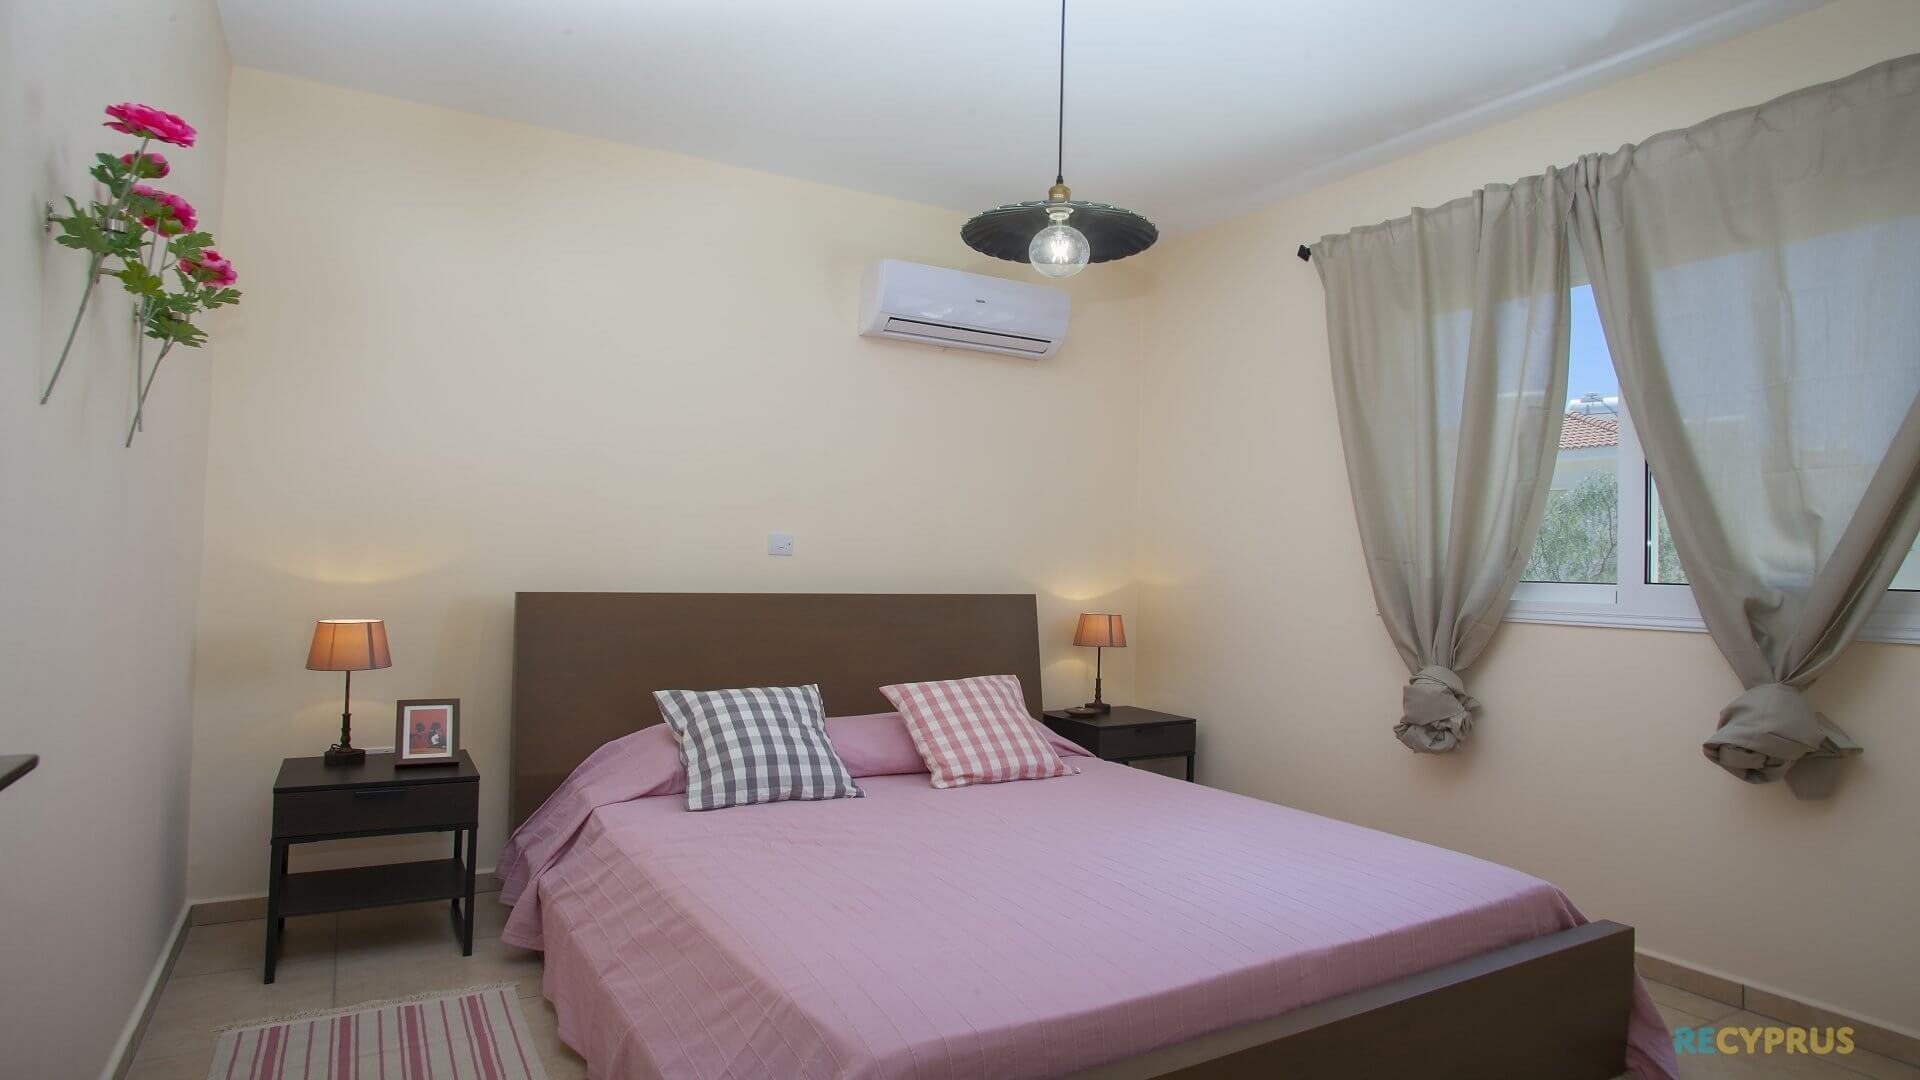 Apartment for sale Kapparis Famagusta Cyprus 5 3442